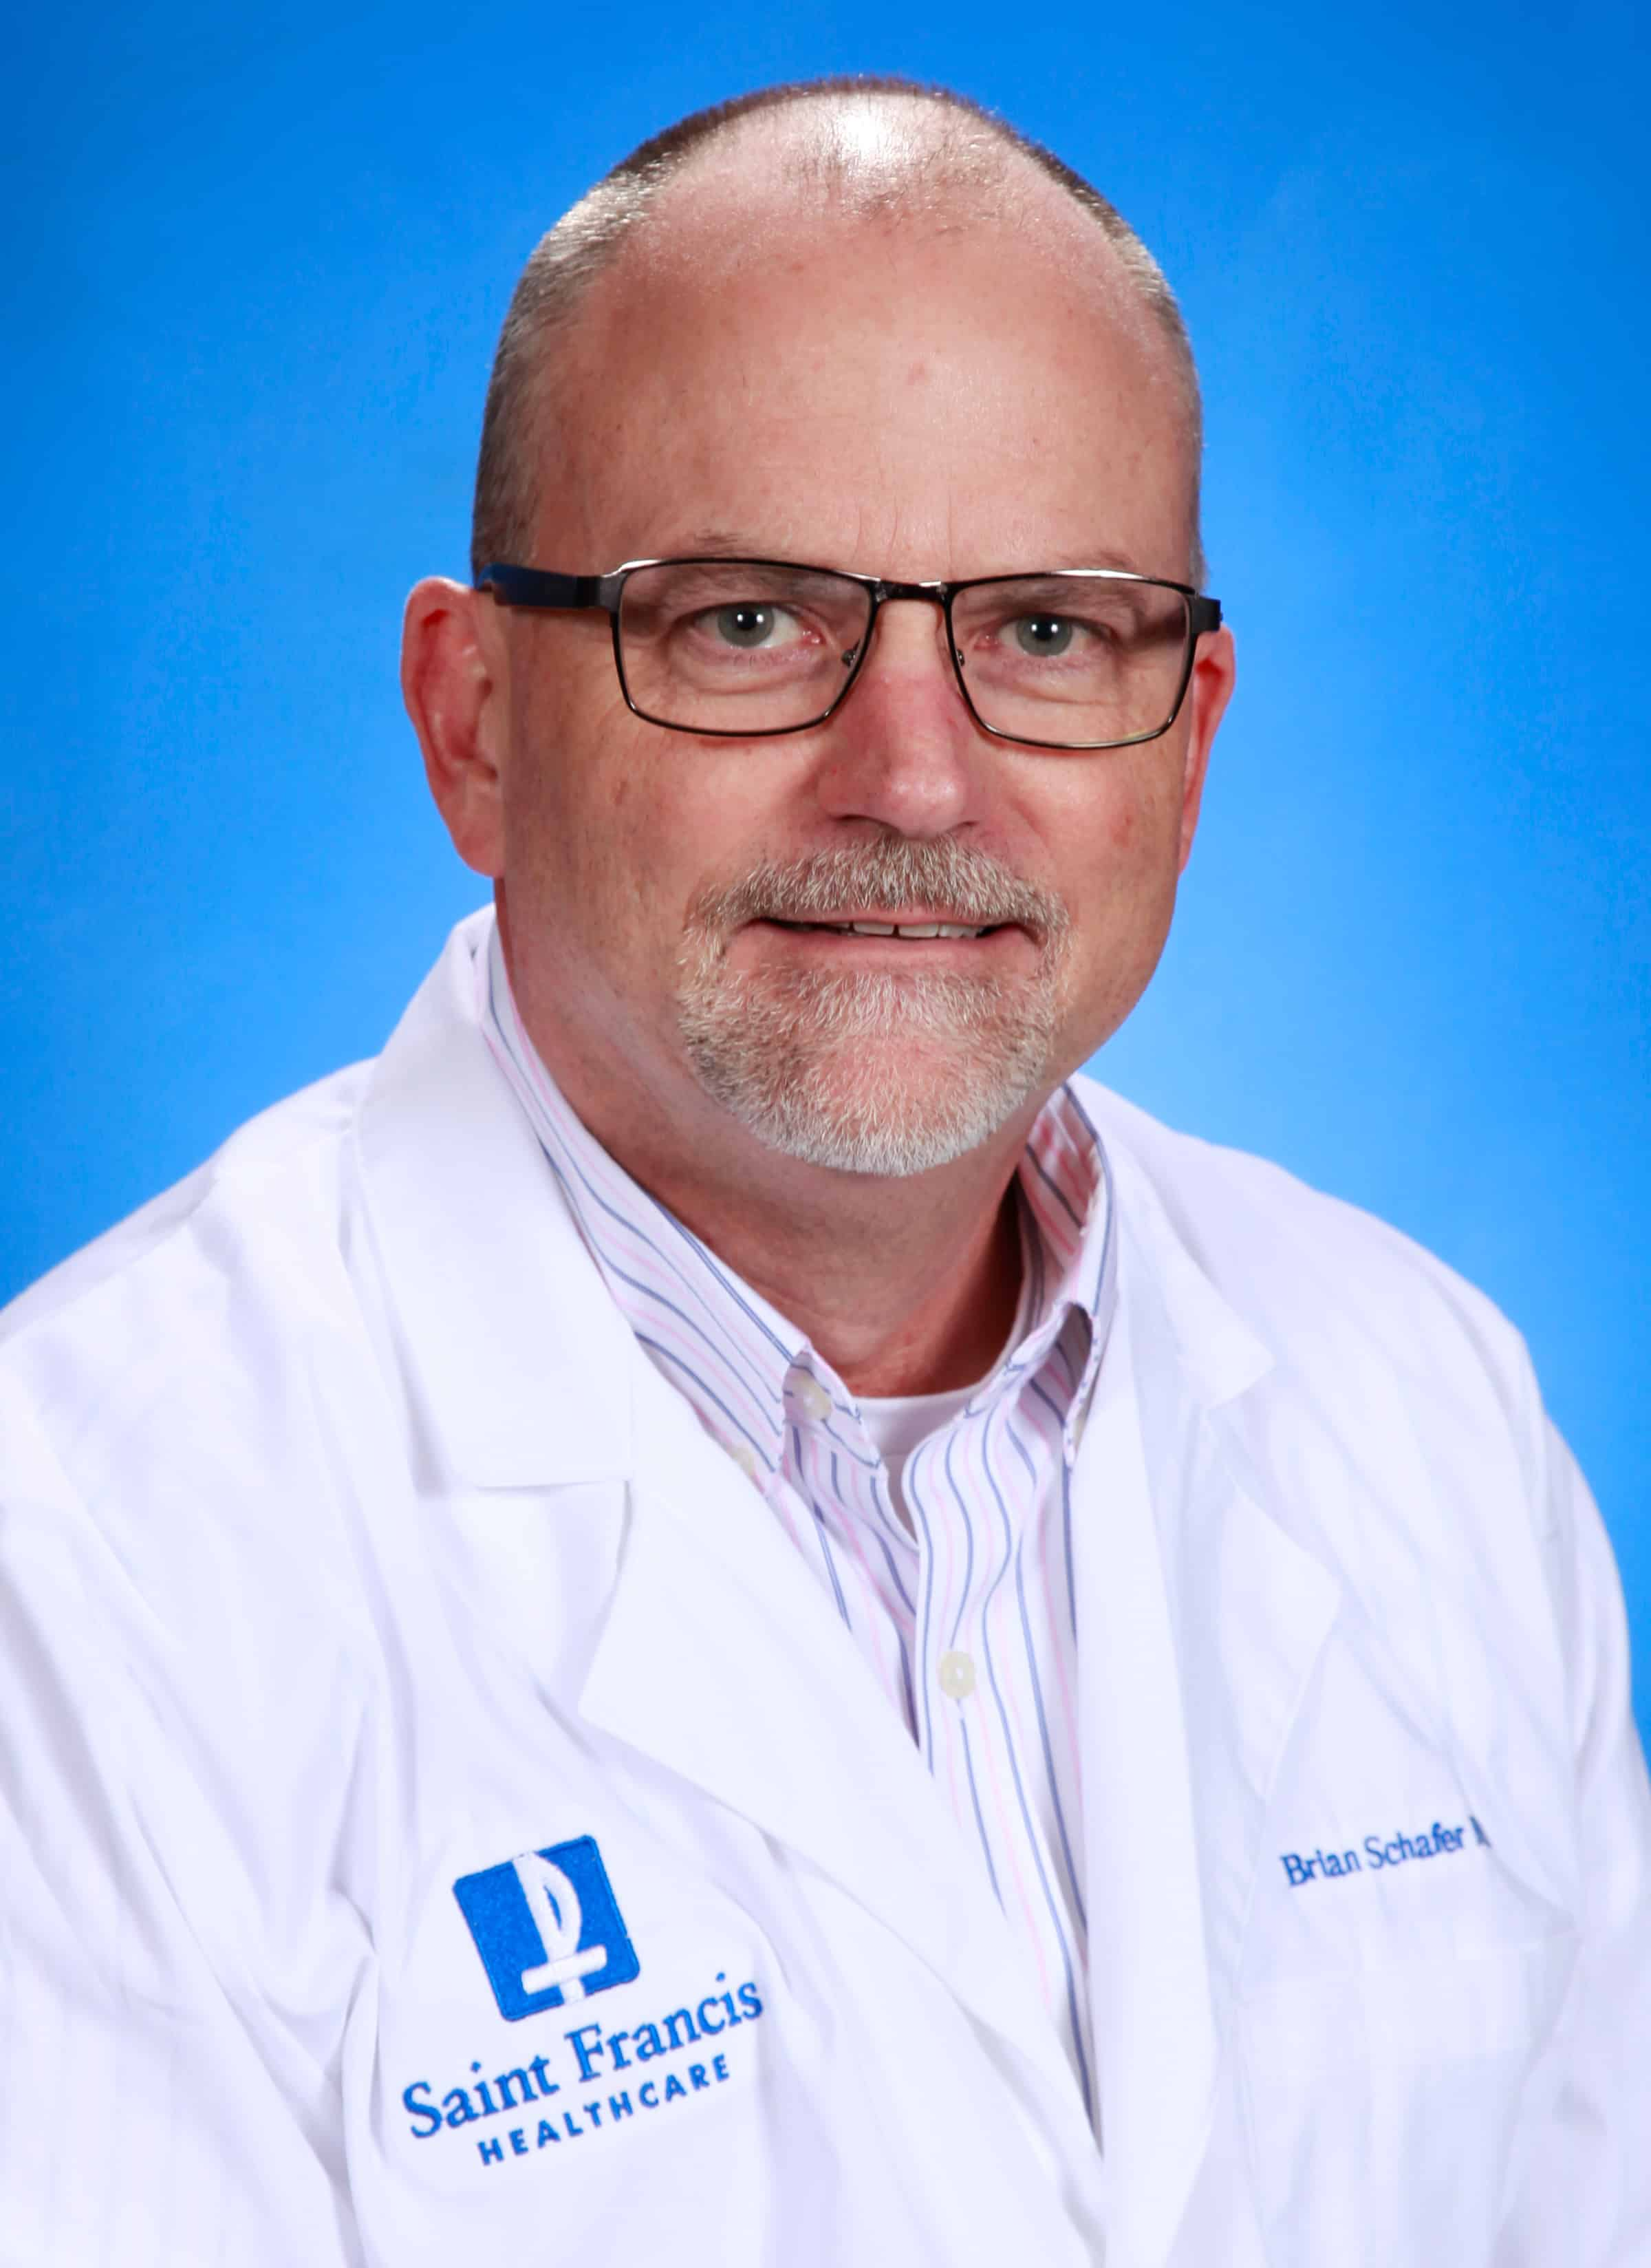 Brian C. Schafer, MD